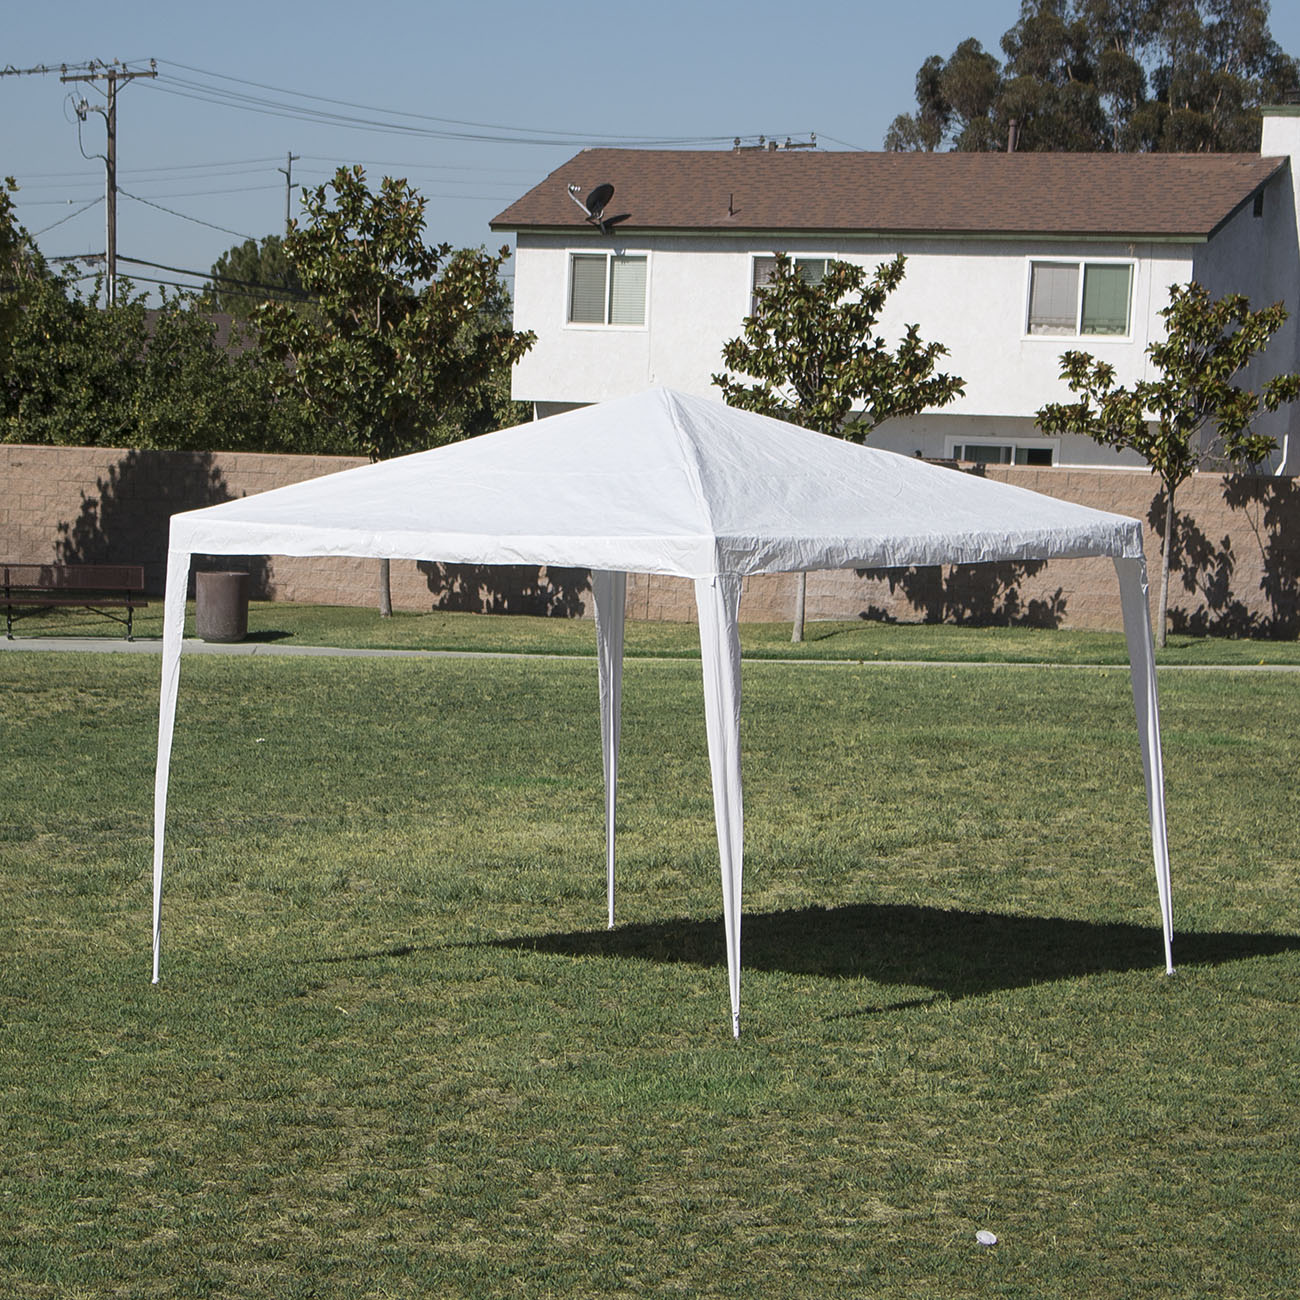 10-039-20-039-30-039-Canopy-Party- & 10u0027 20u0027 30u0027 Canopy Party Wedding Outdoor Tent Gazebo Pavilion w 4 ...